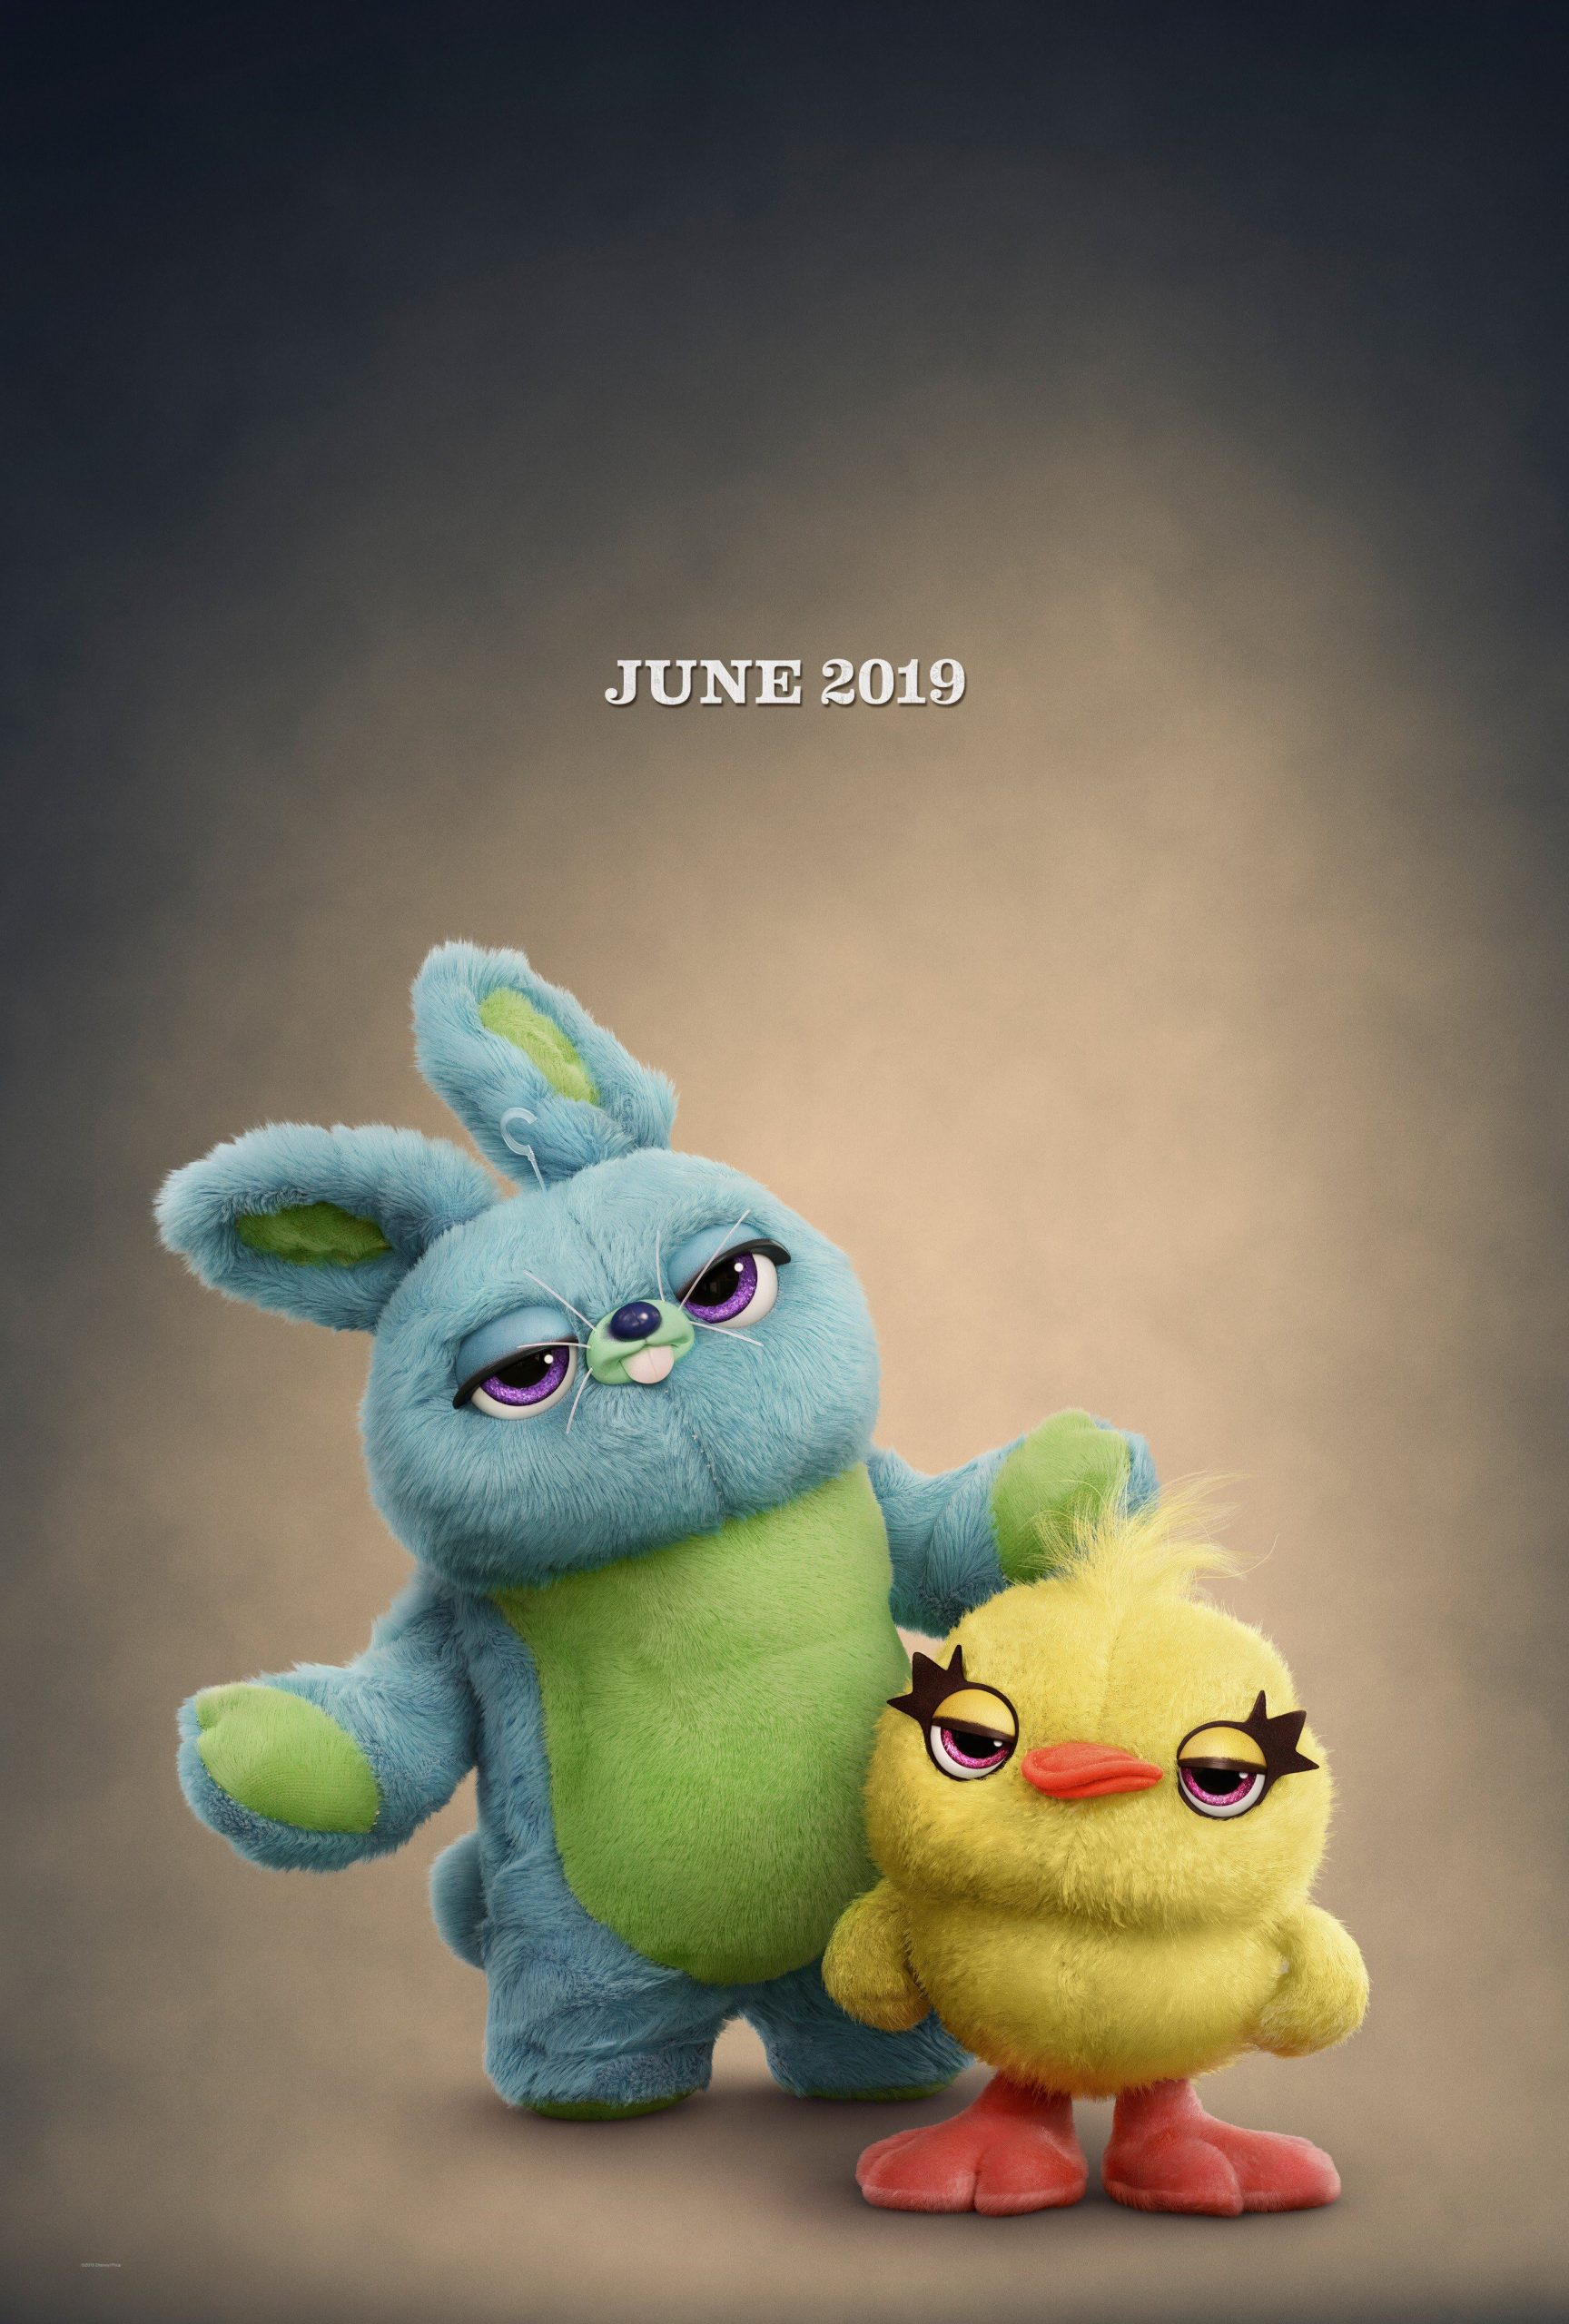 Toy Story 4 Character Posters Bunny and Duck